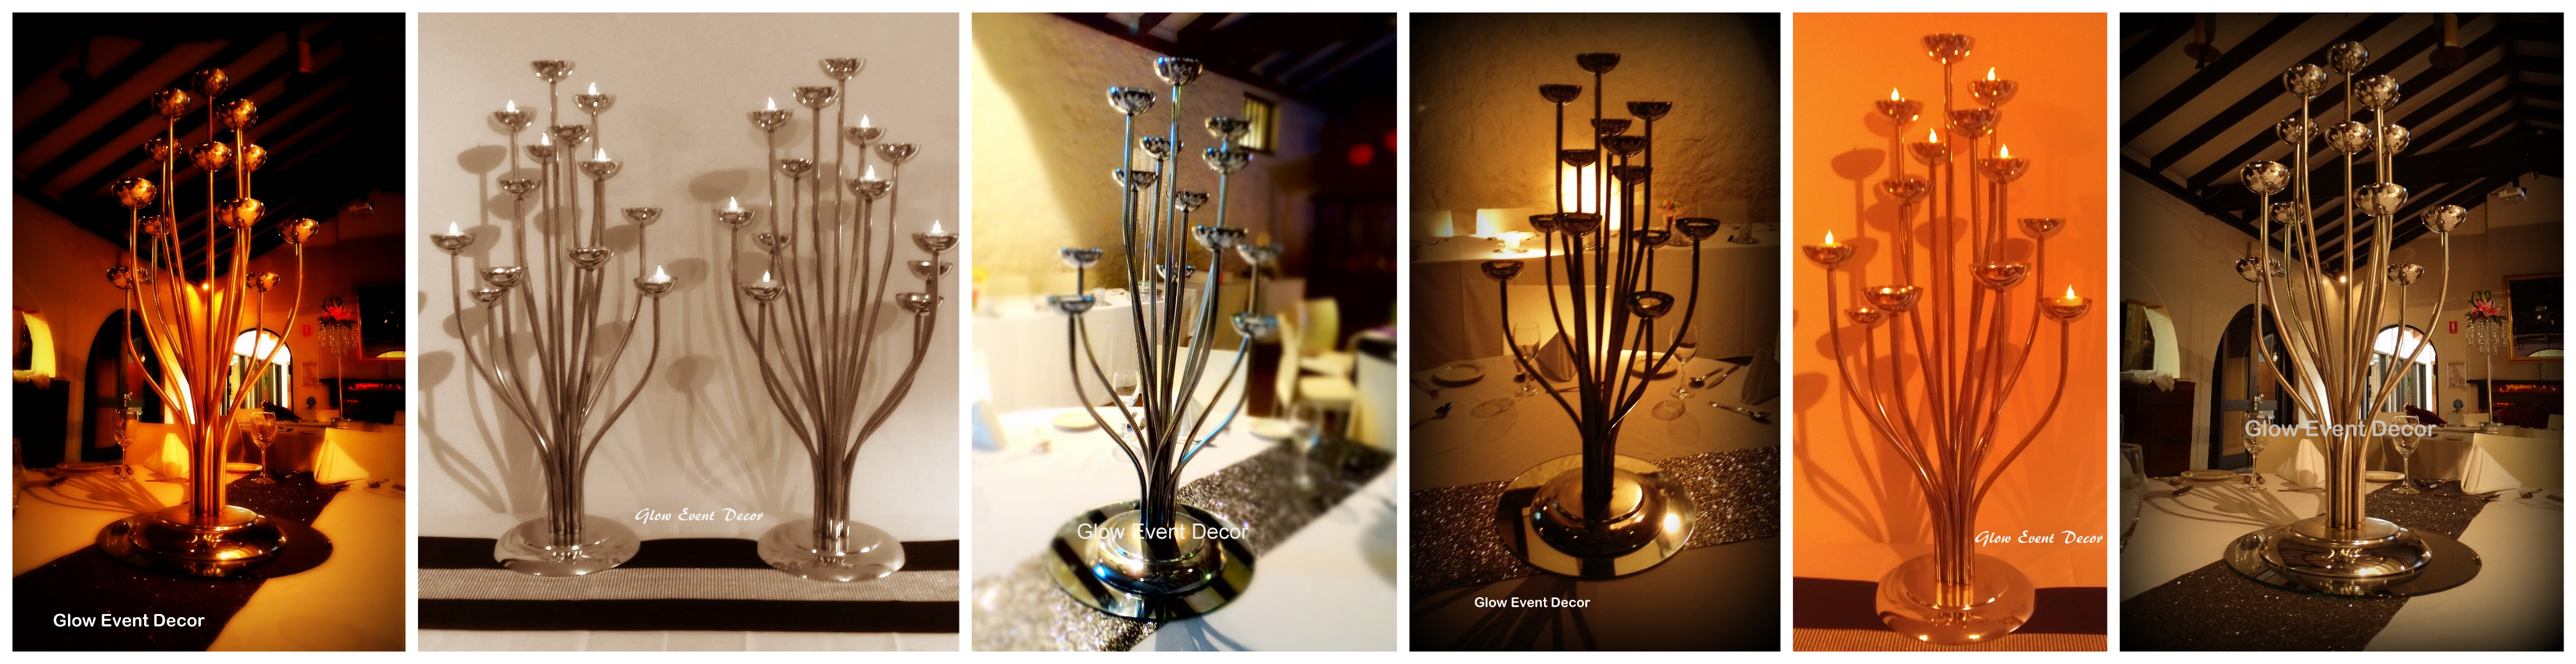 13 tier chrome candelabra table decoration centrepieces for hire in adelaide, from glow event decor